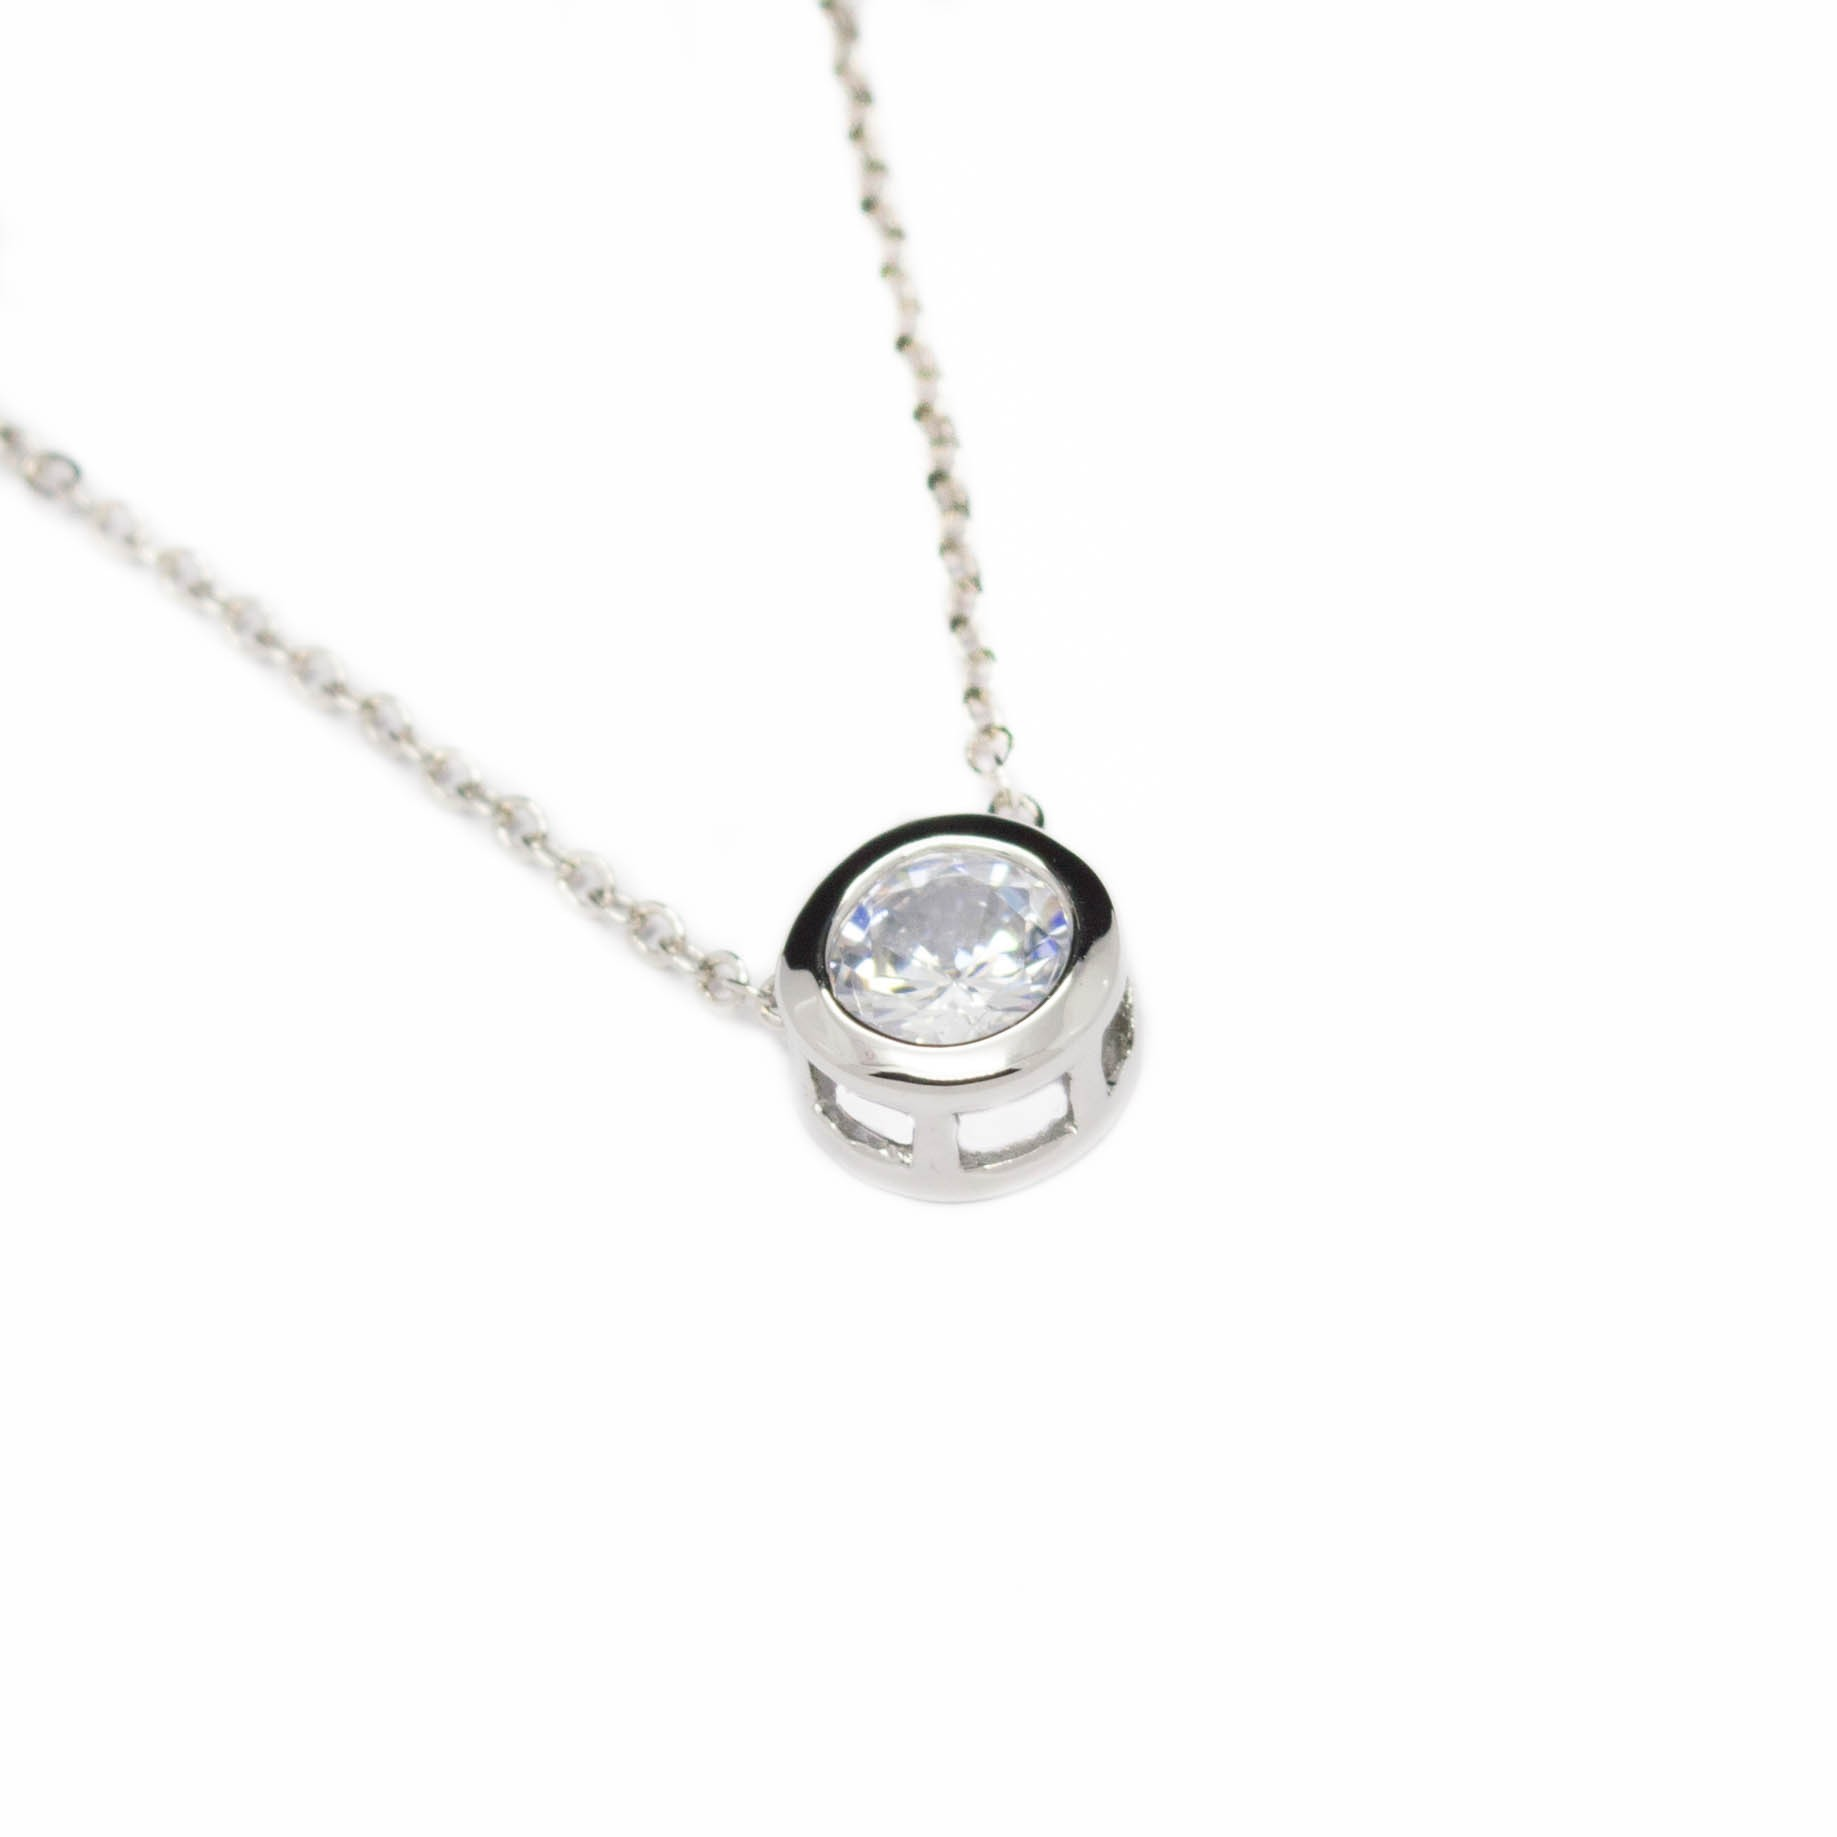 Women s white gold necklace with a round strass pendant